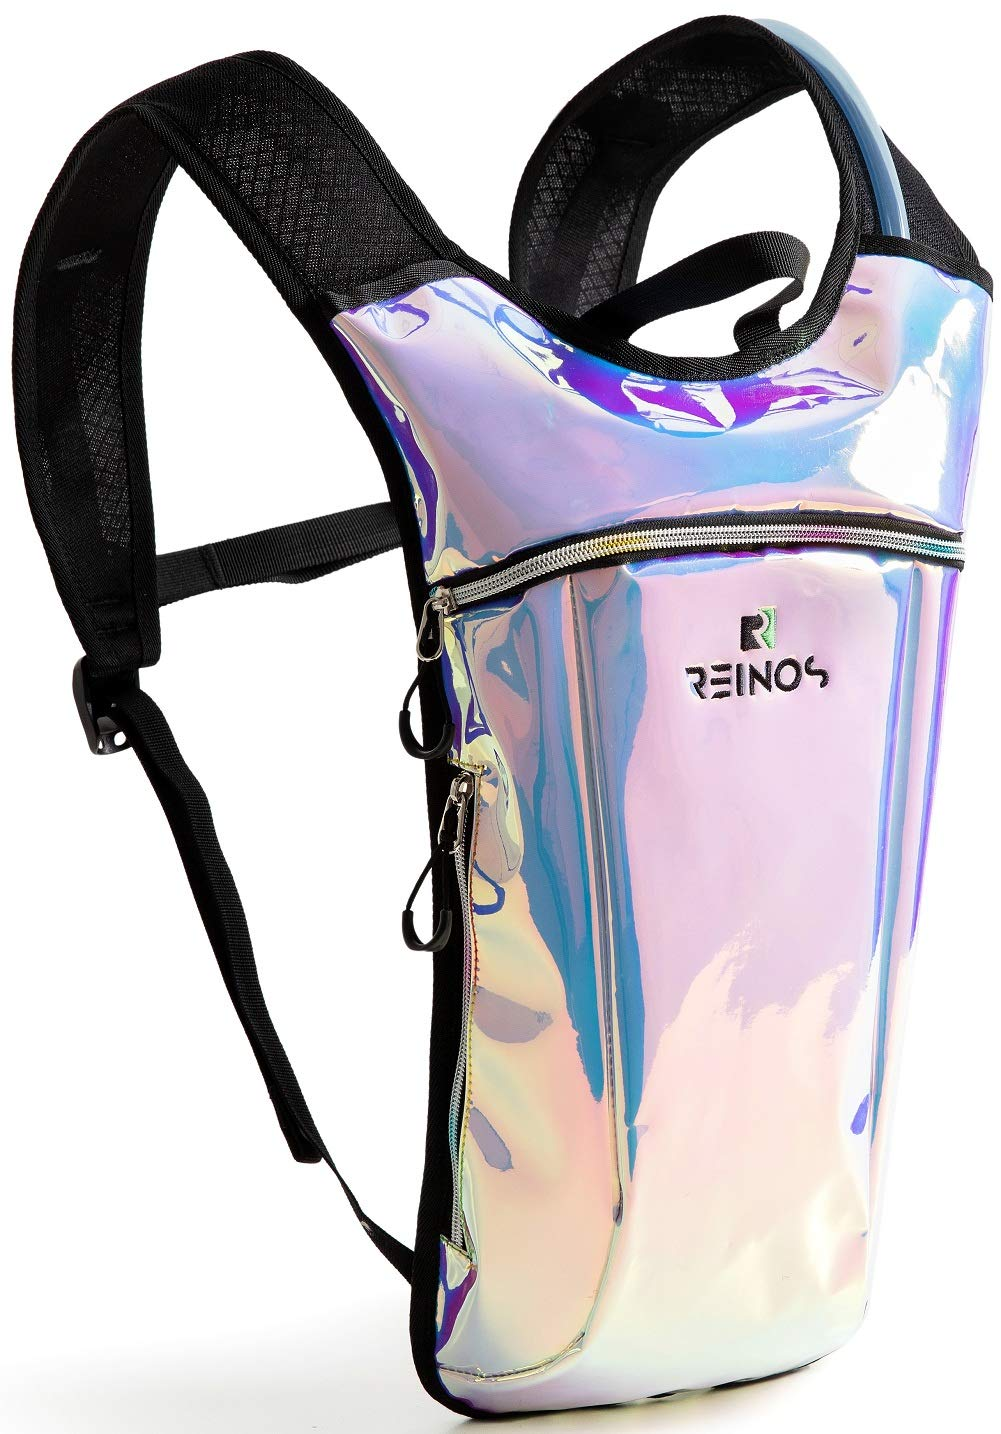 REINOS Hydration Backpack - Light Water Pack - 2L Water Bladder Included for Running, Hiking, Biking, Festivals, Raves (Holographic - Blue) by REINOS